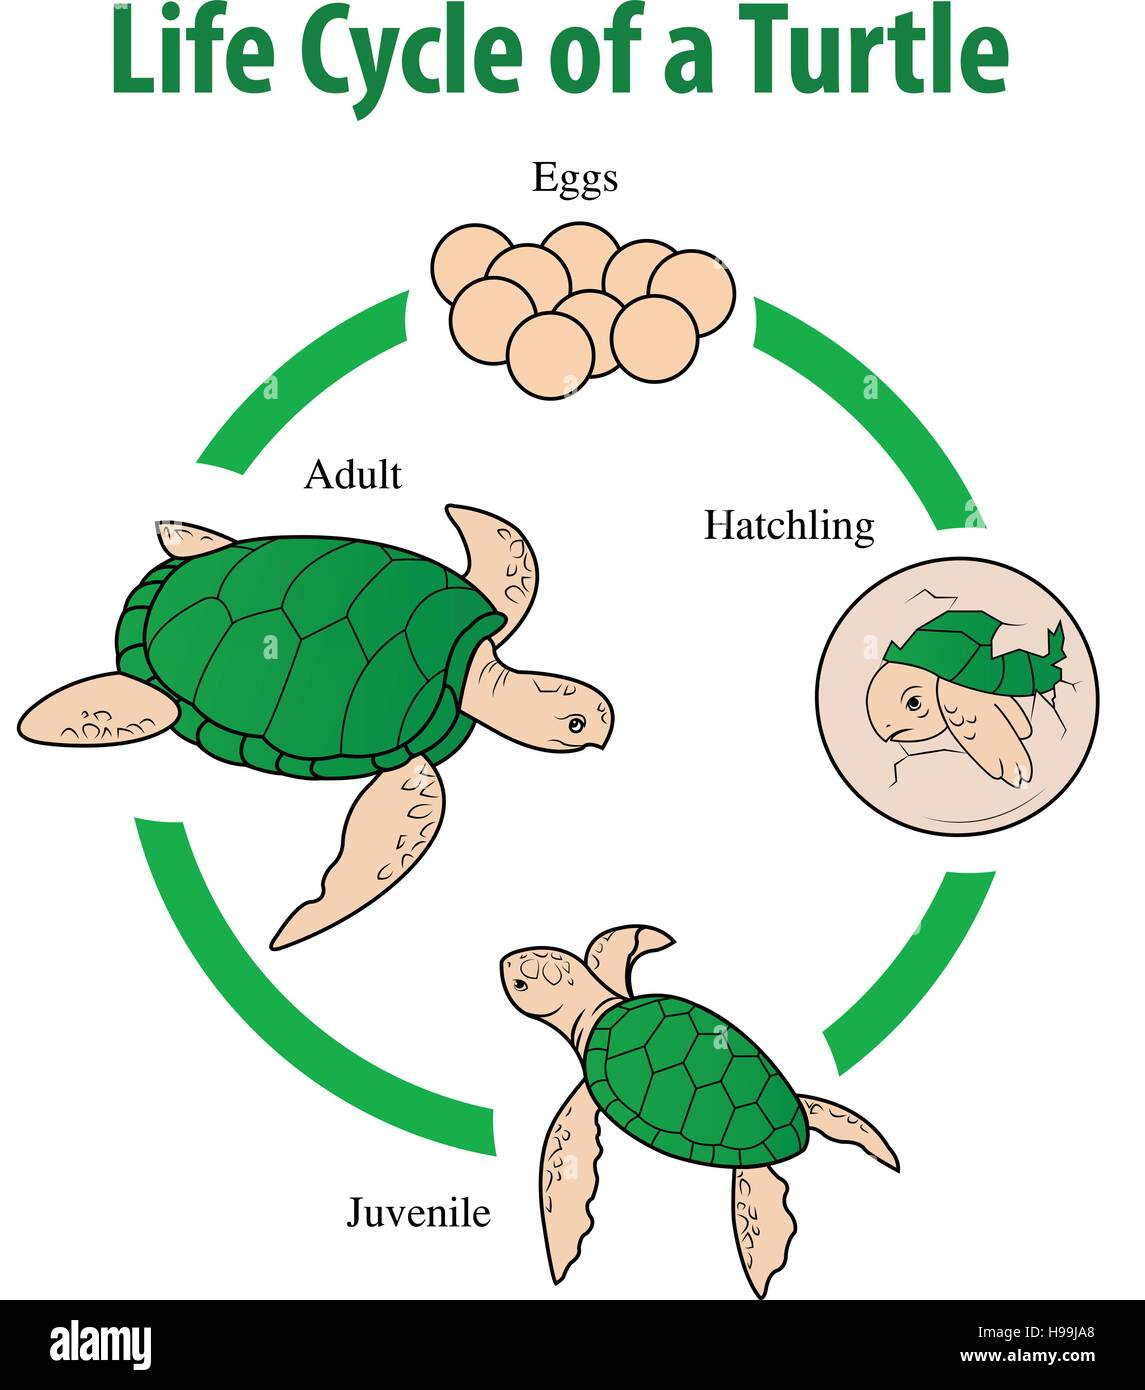 Stock Photo Vector Illustration Of Turtle Life Cycle 126216448 on Life Cycle Of A En Worksheet